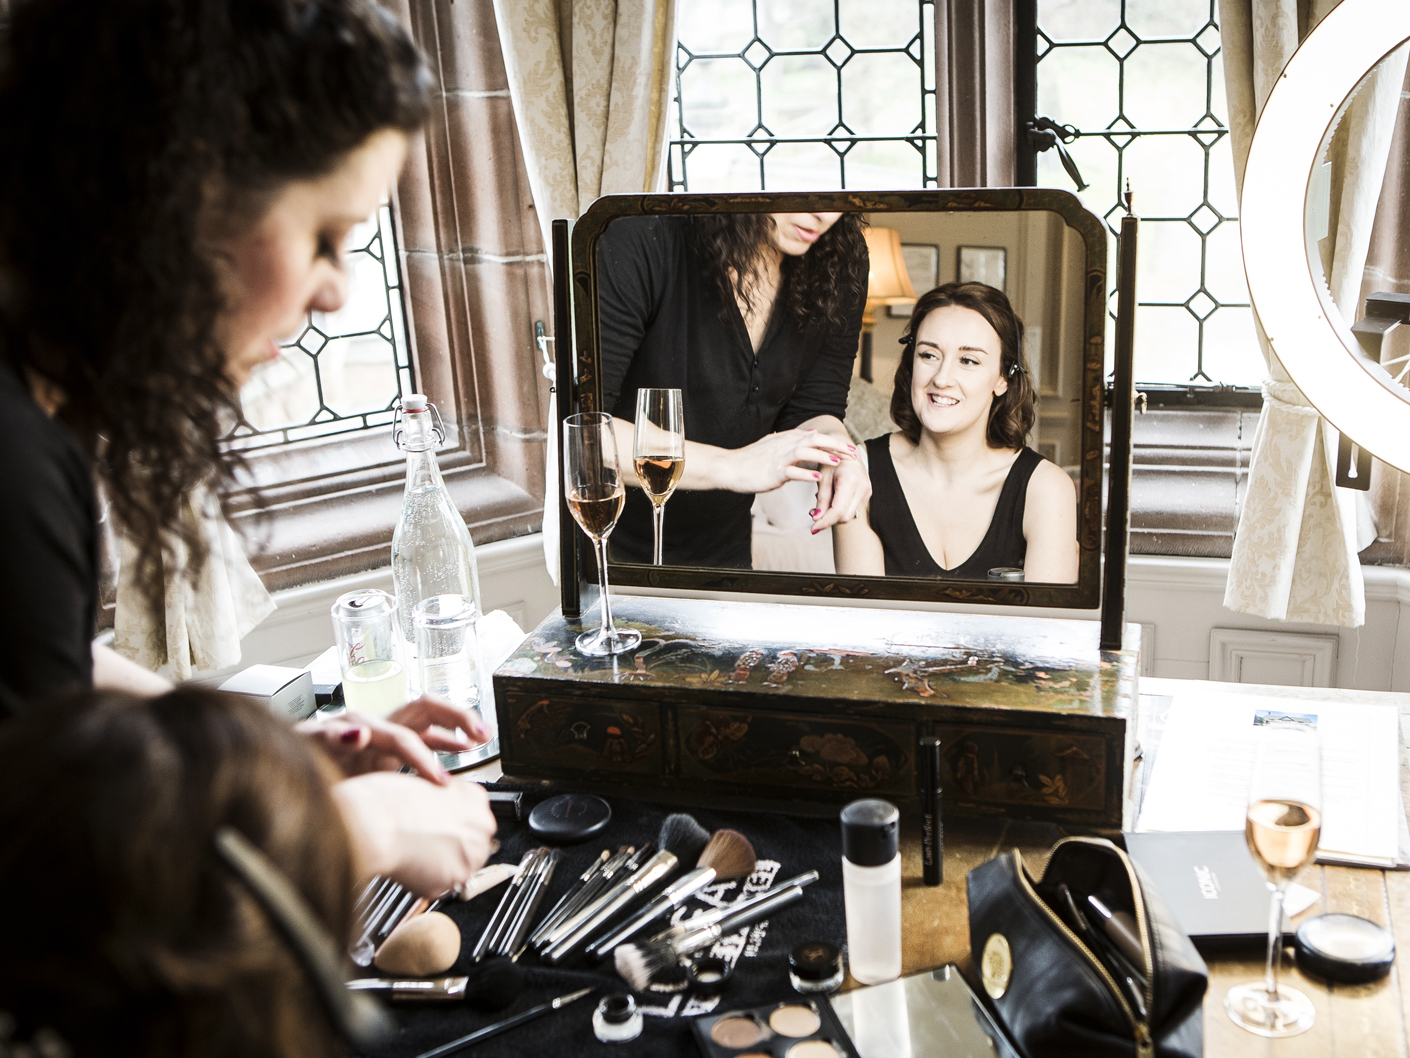 bridal-make-up-and-wedding-photography-at-thornton-manor